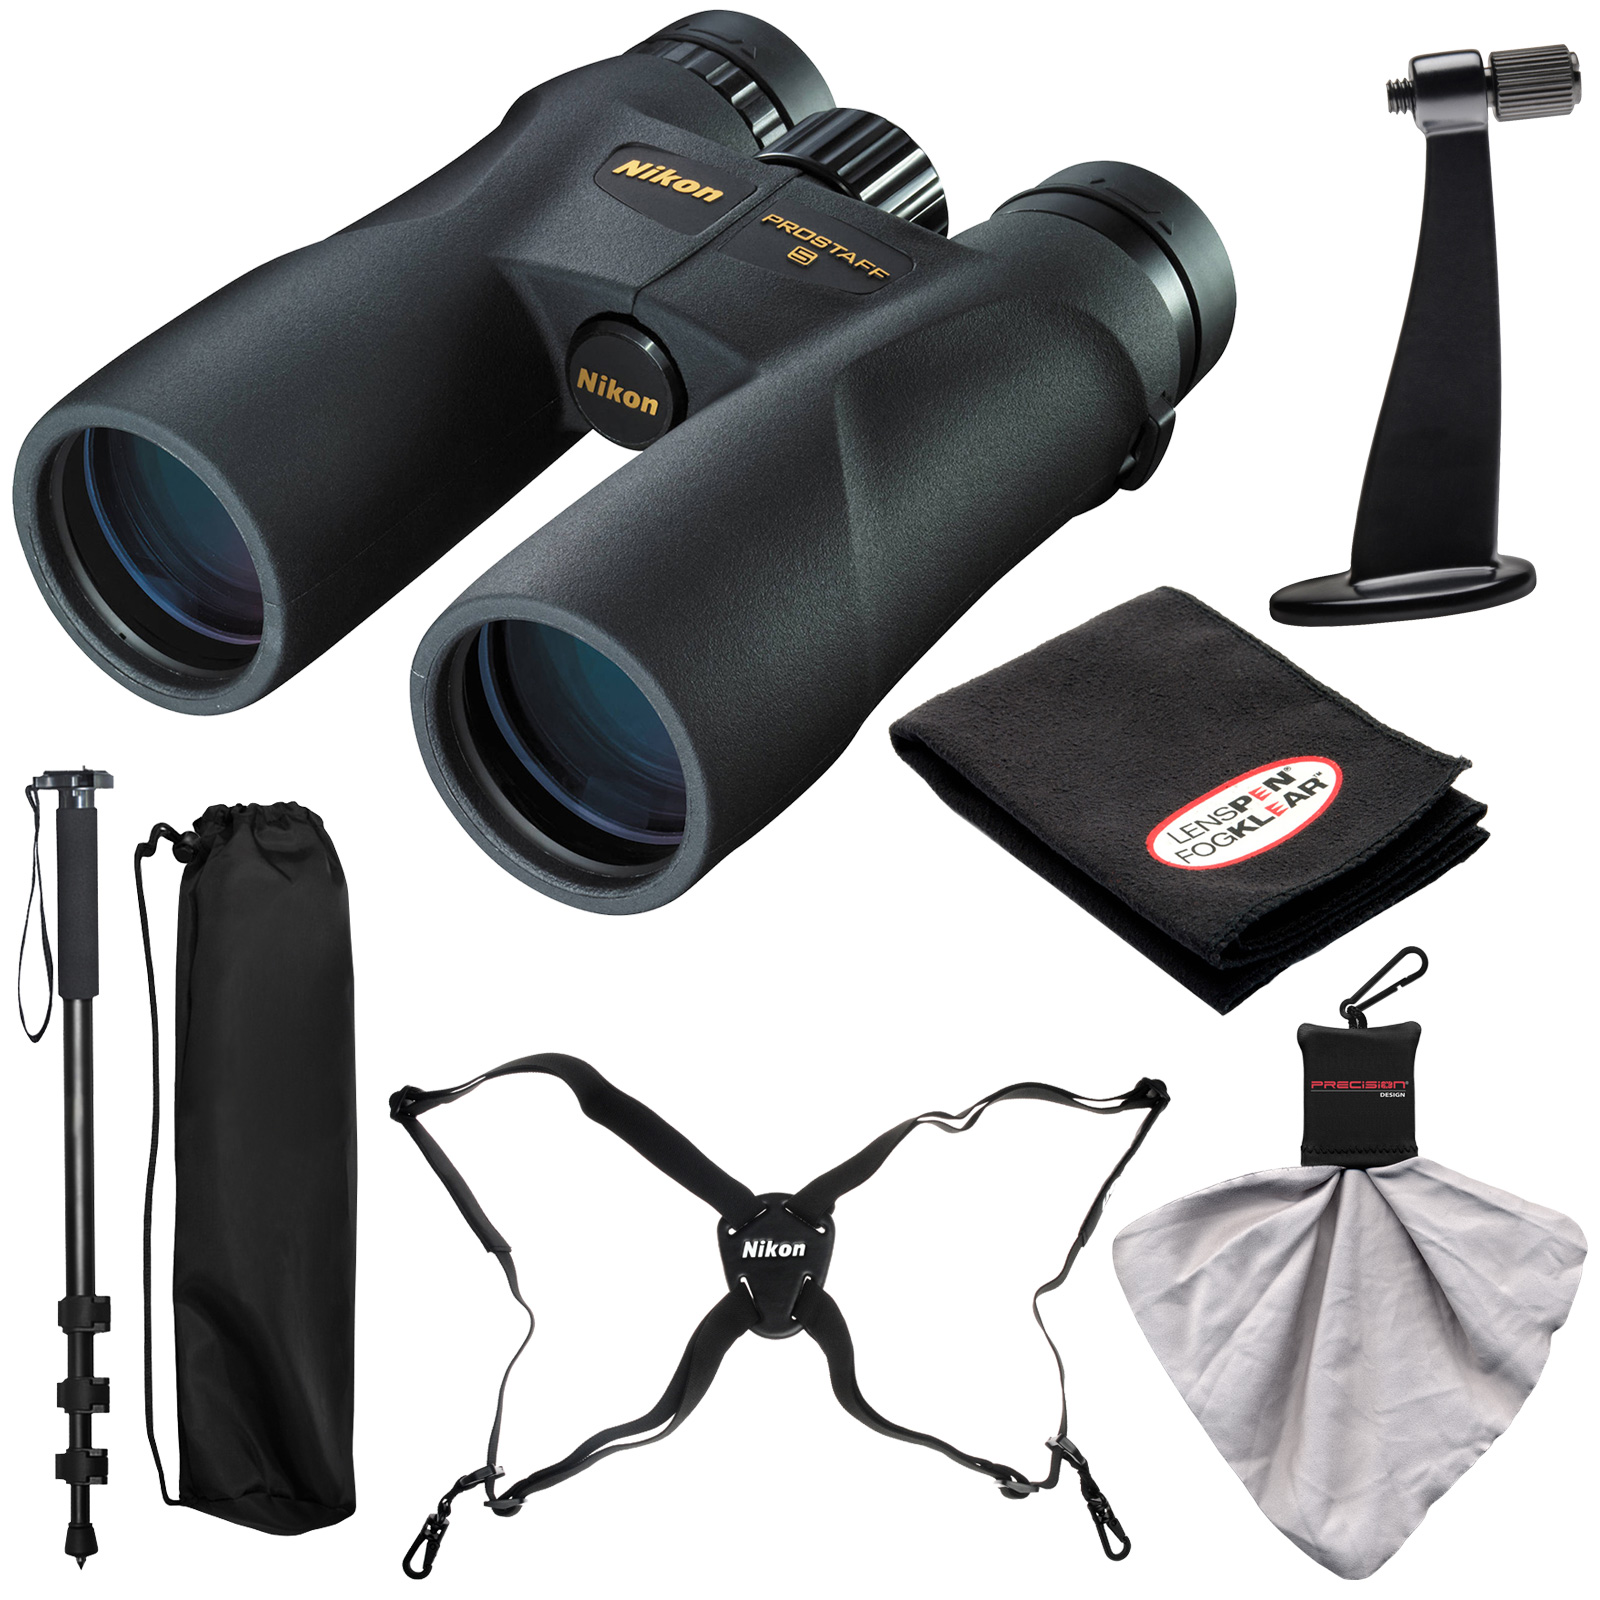 Nikon Prostaff 5 8x42 ATB Waterproof / Fogproof Binoculars with Case   Harness   Smartphone Adapter   Cleaning Kit